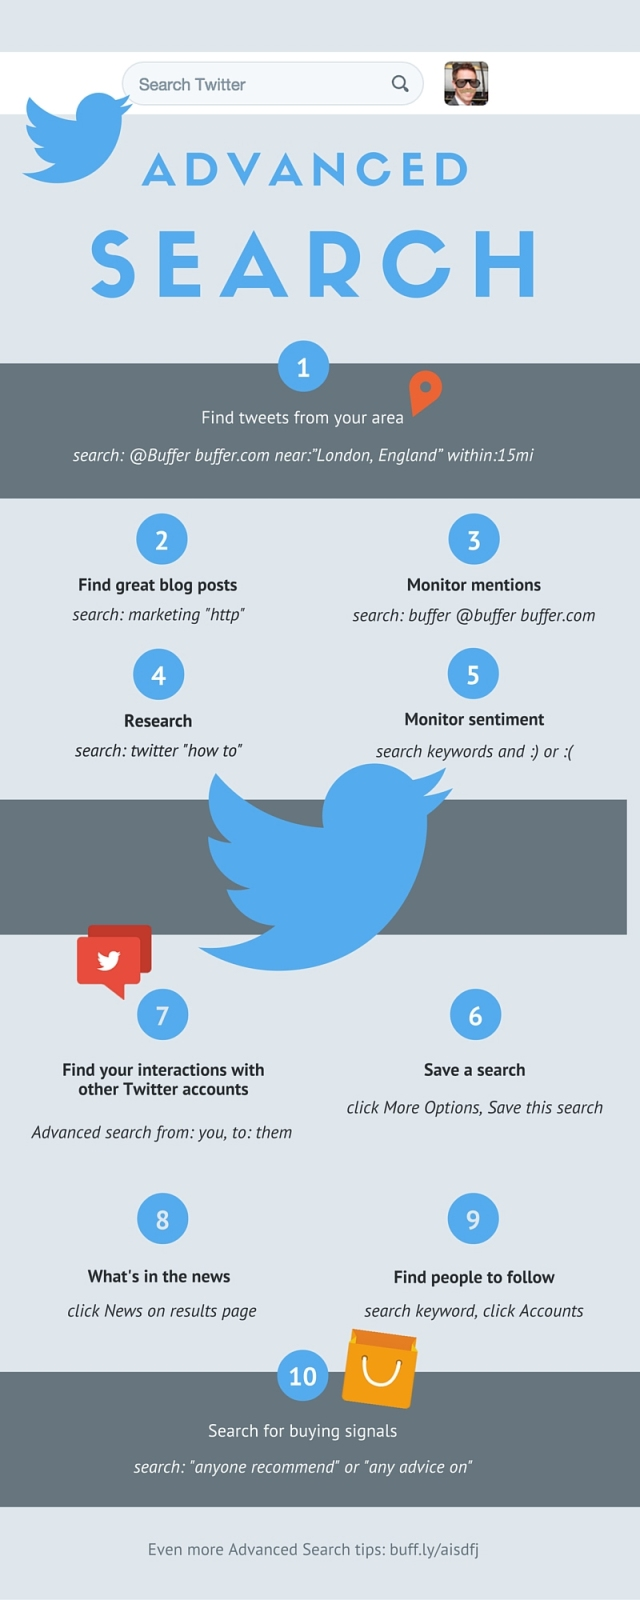 10 Ways to Become a Twitter Power User by Using Advanced Search